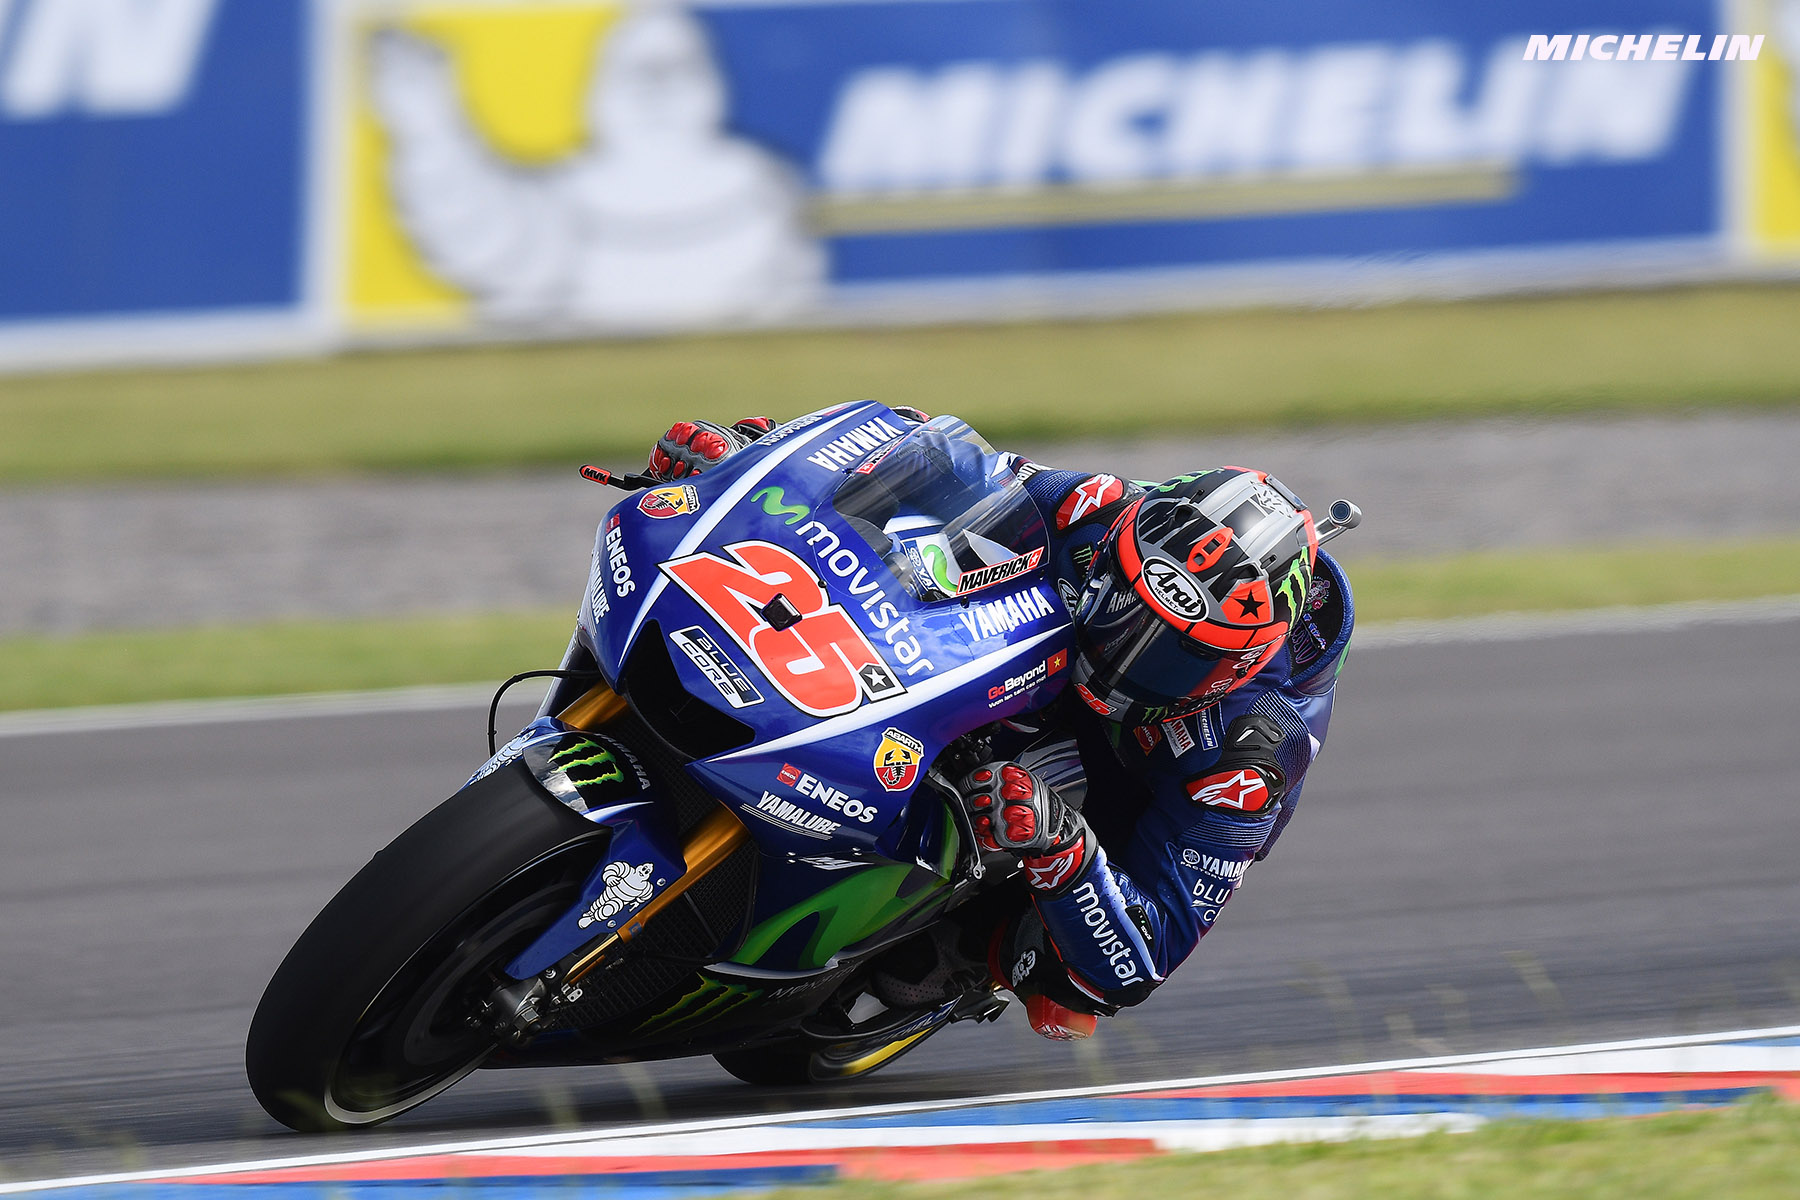 MotoGP: a second straight win for Viñales